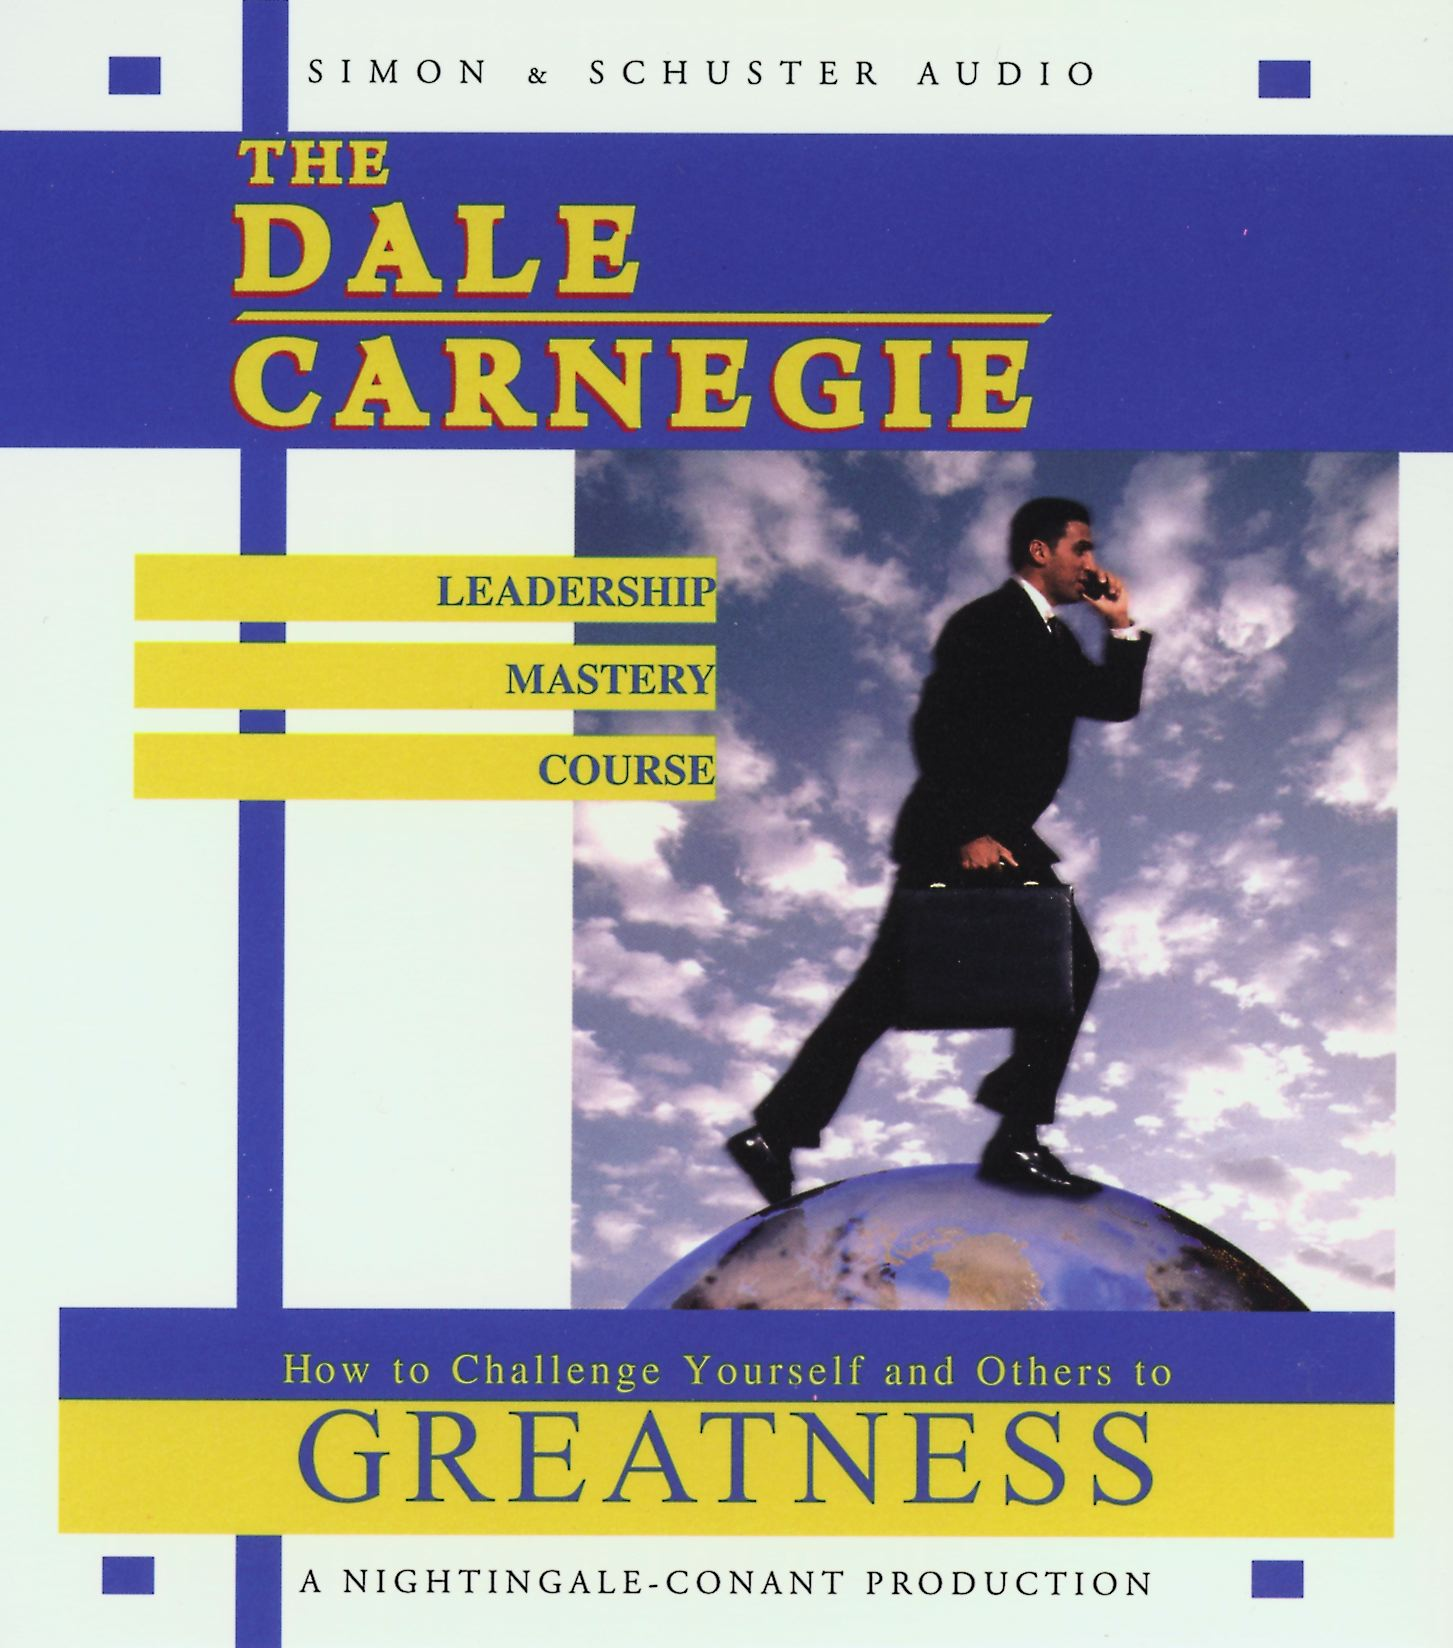 The dale carnegie leadership mastery course 9780743509374 hr